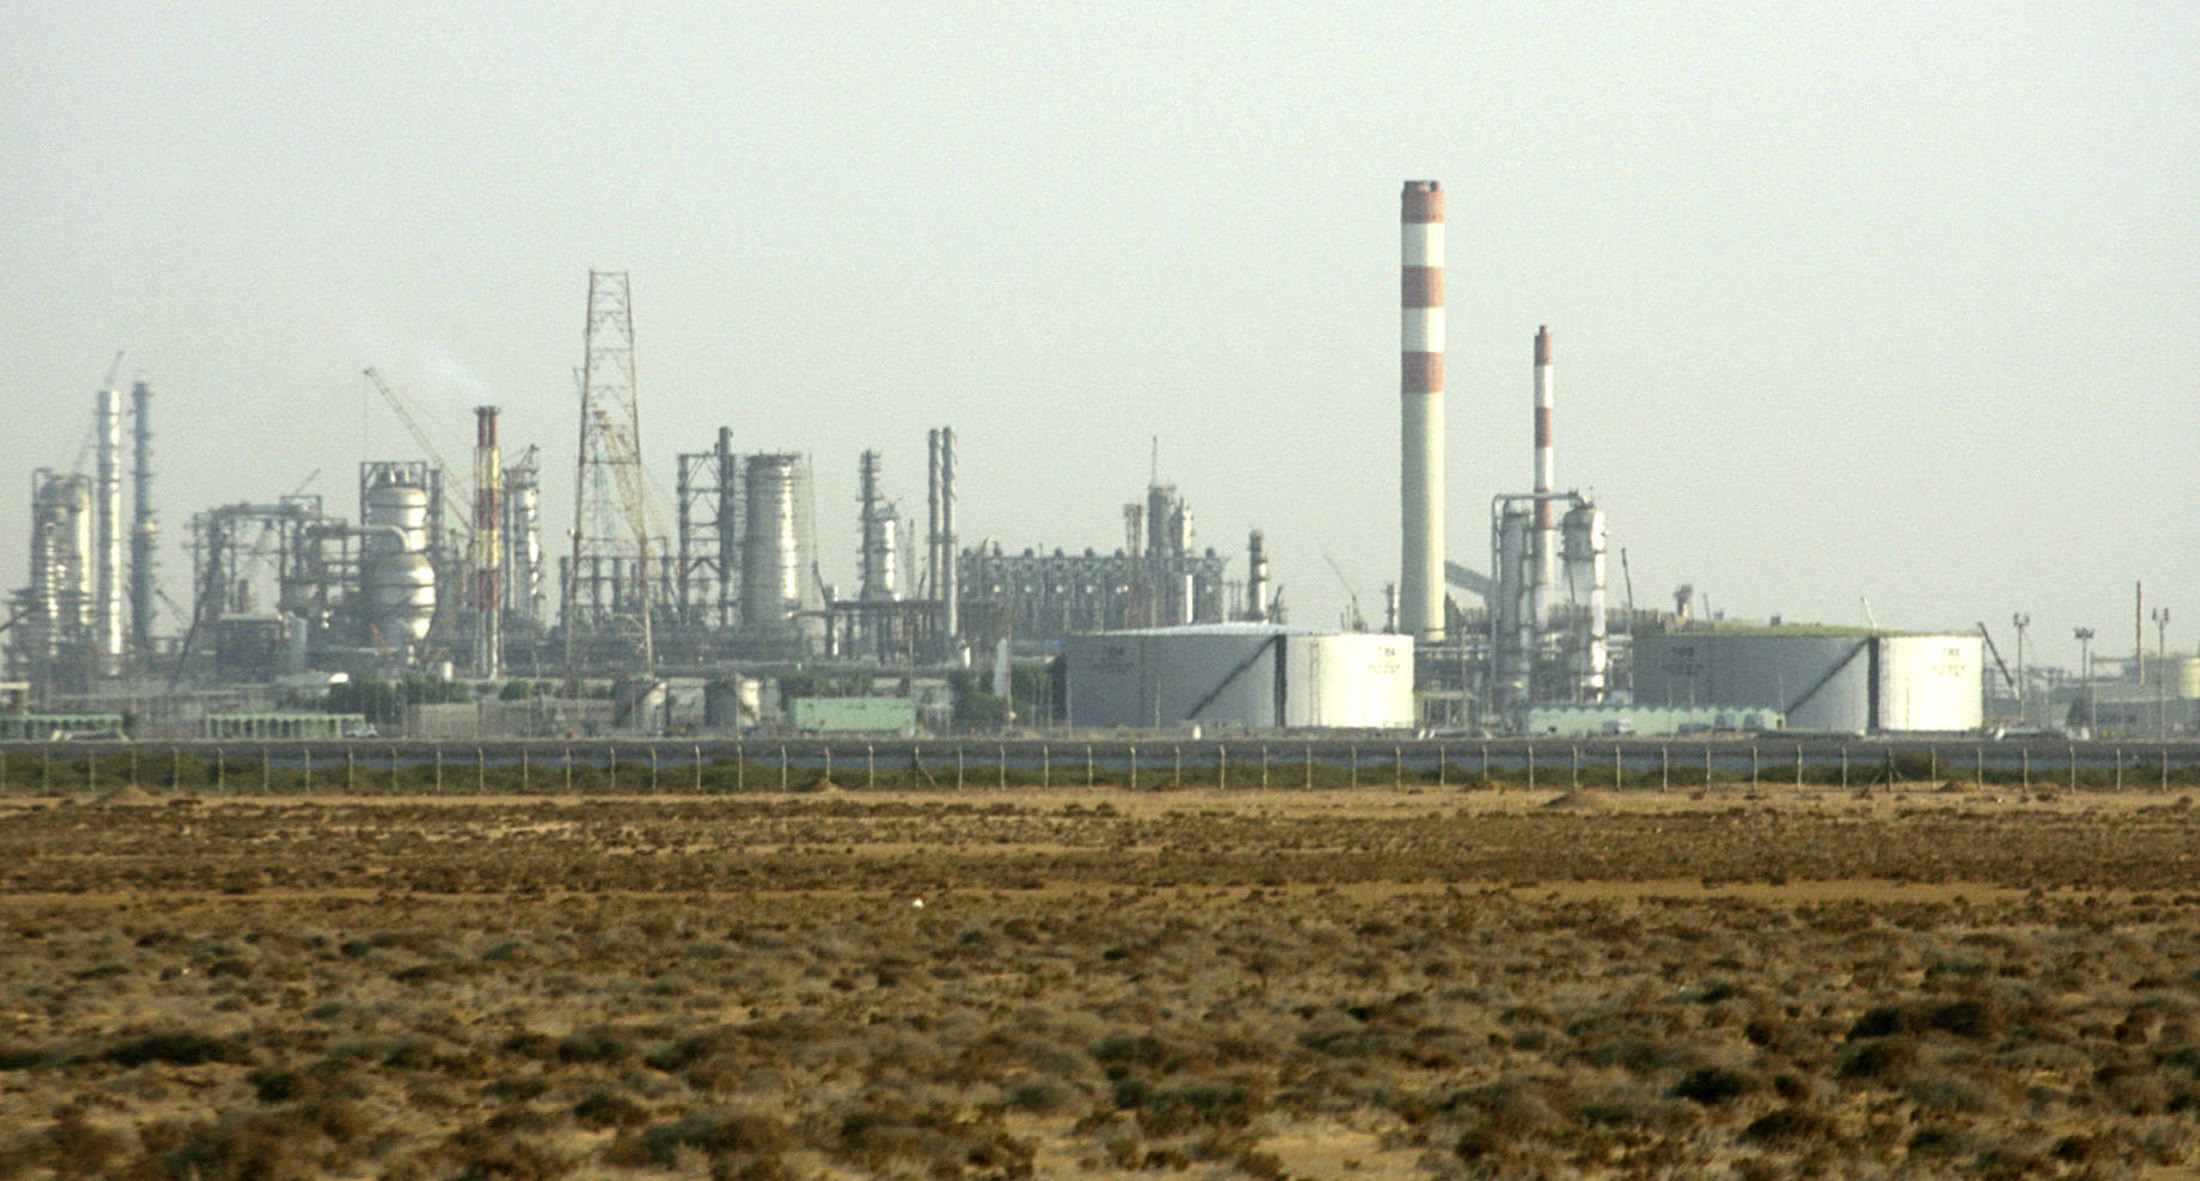 The Petro Rabigh plant in Saudi Arabia, targetted by a highly organized cyberattack in 2017.